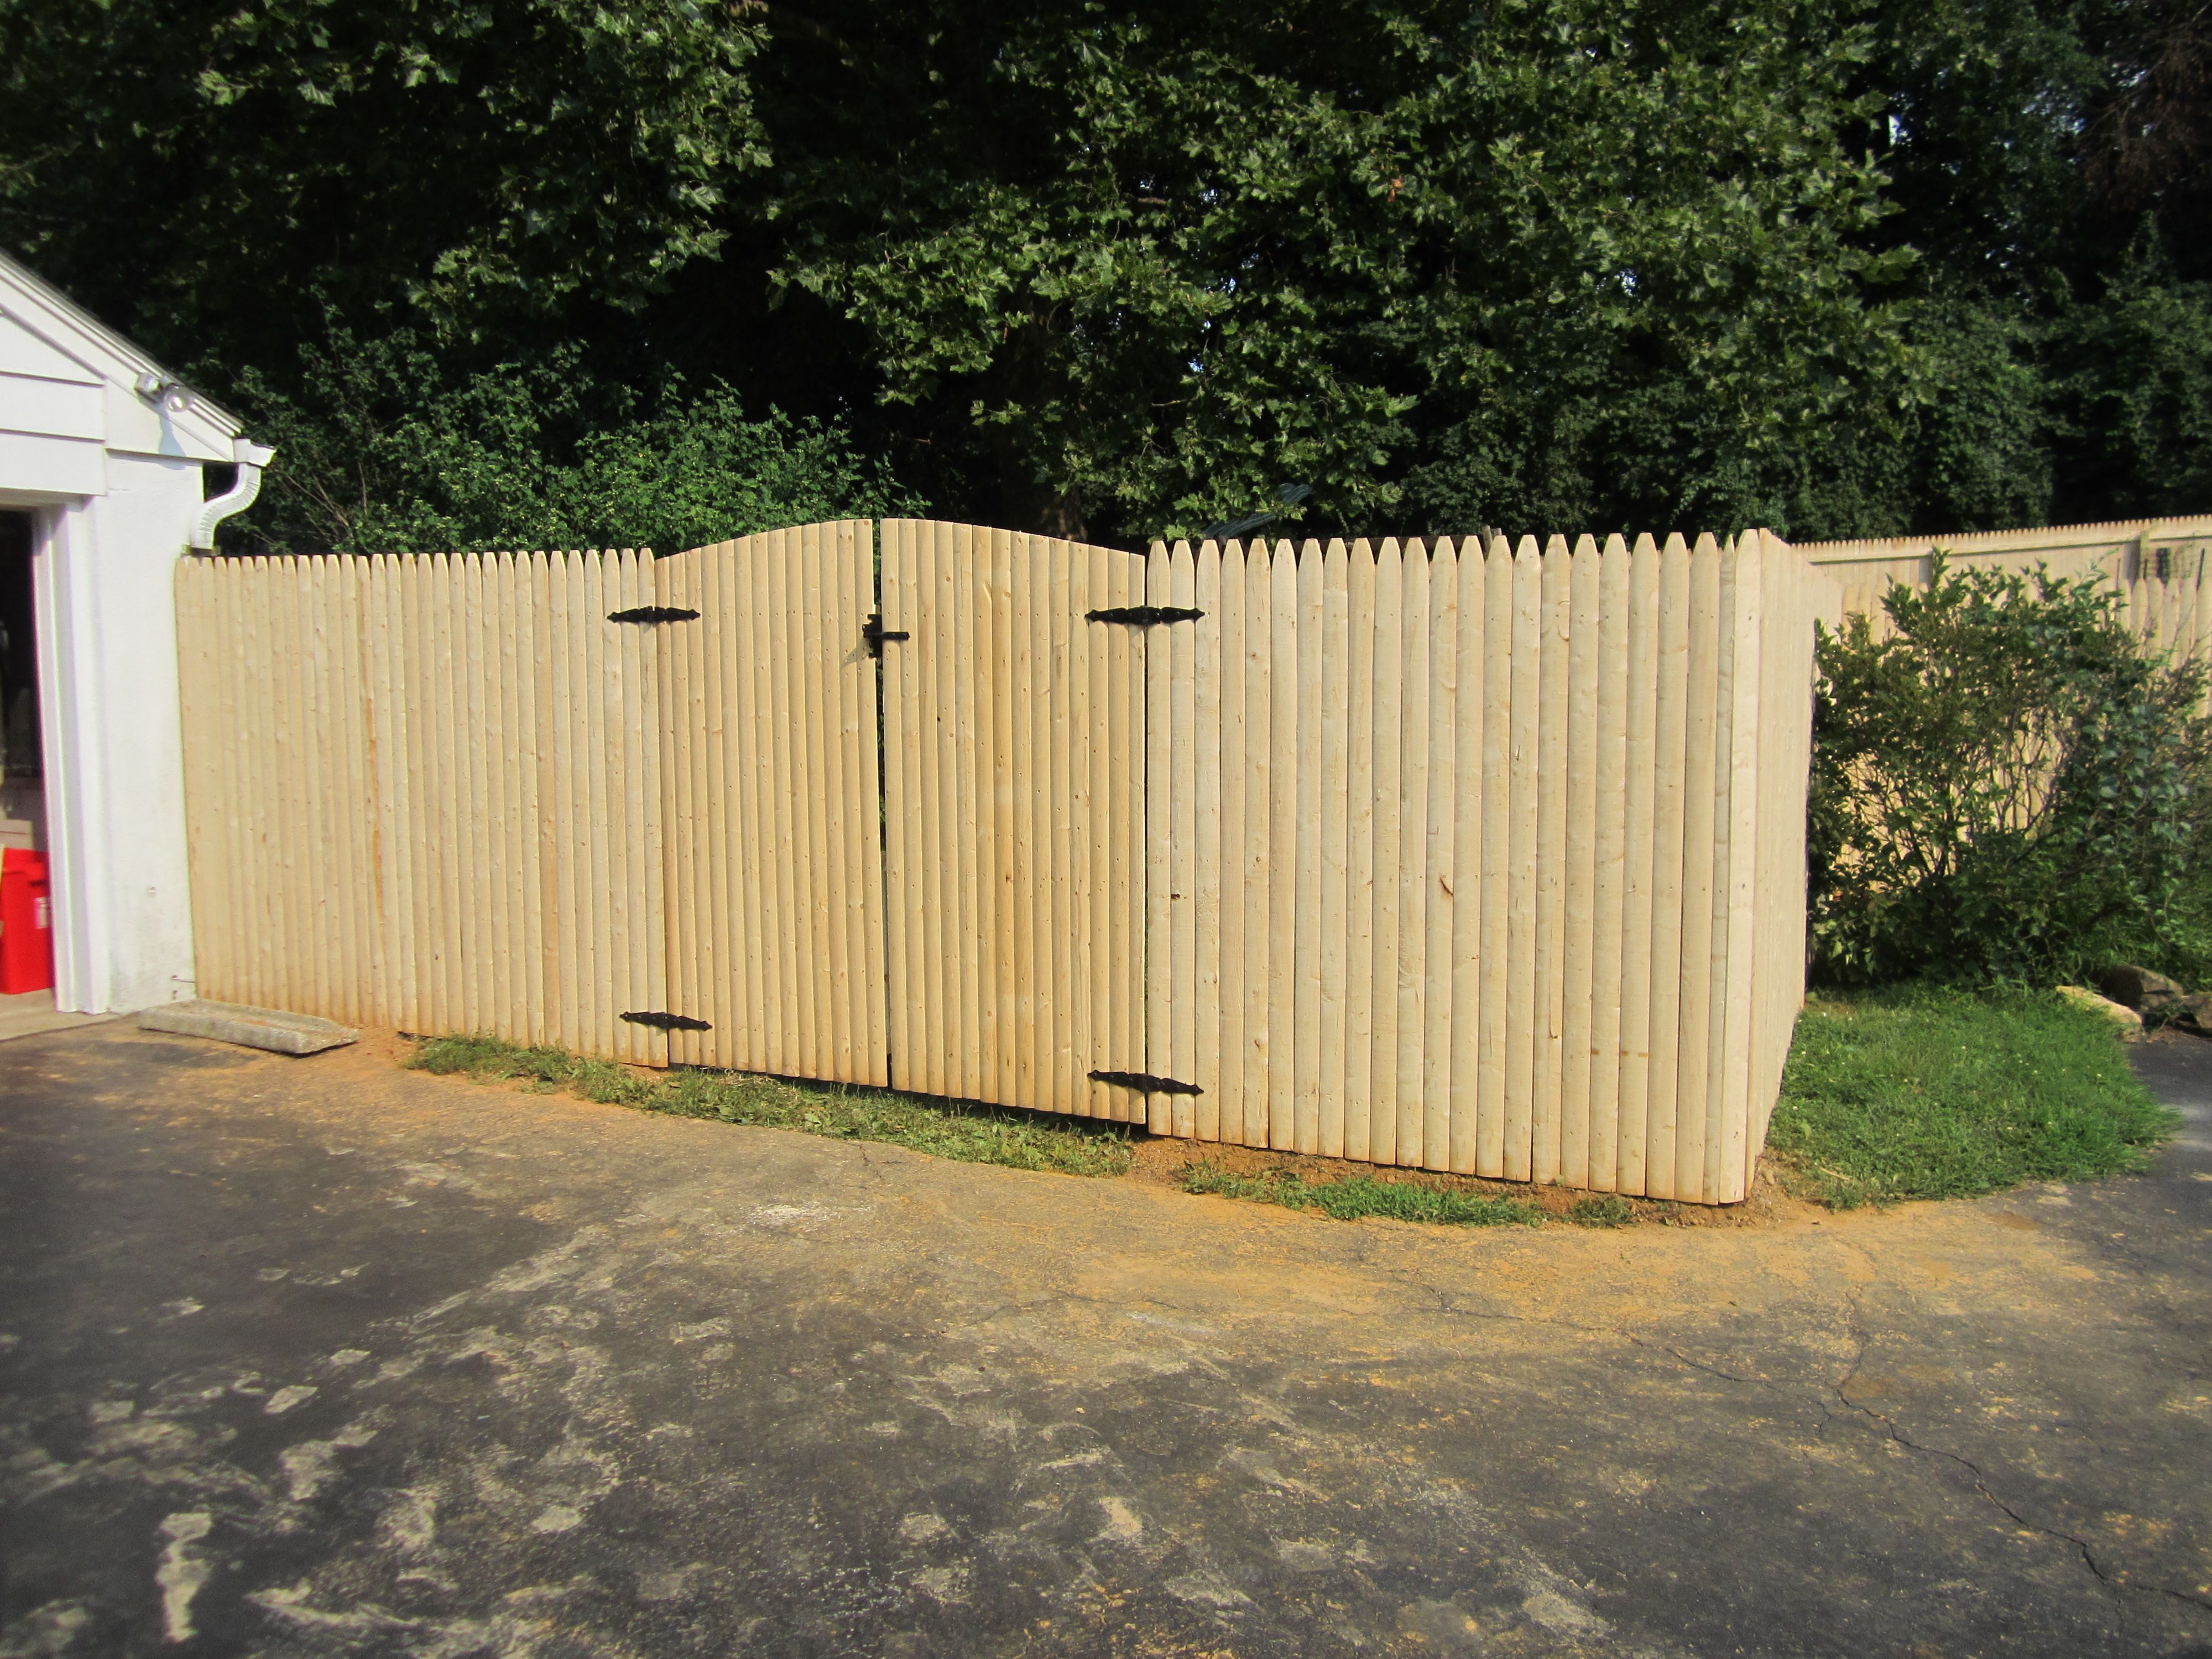 6 Spruce Stockade With A Convex Gate Wooden Fence Panels Fence Panels Wooden Fence